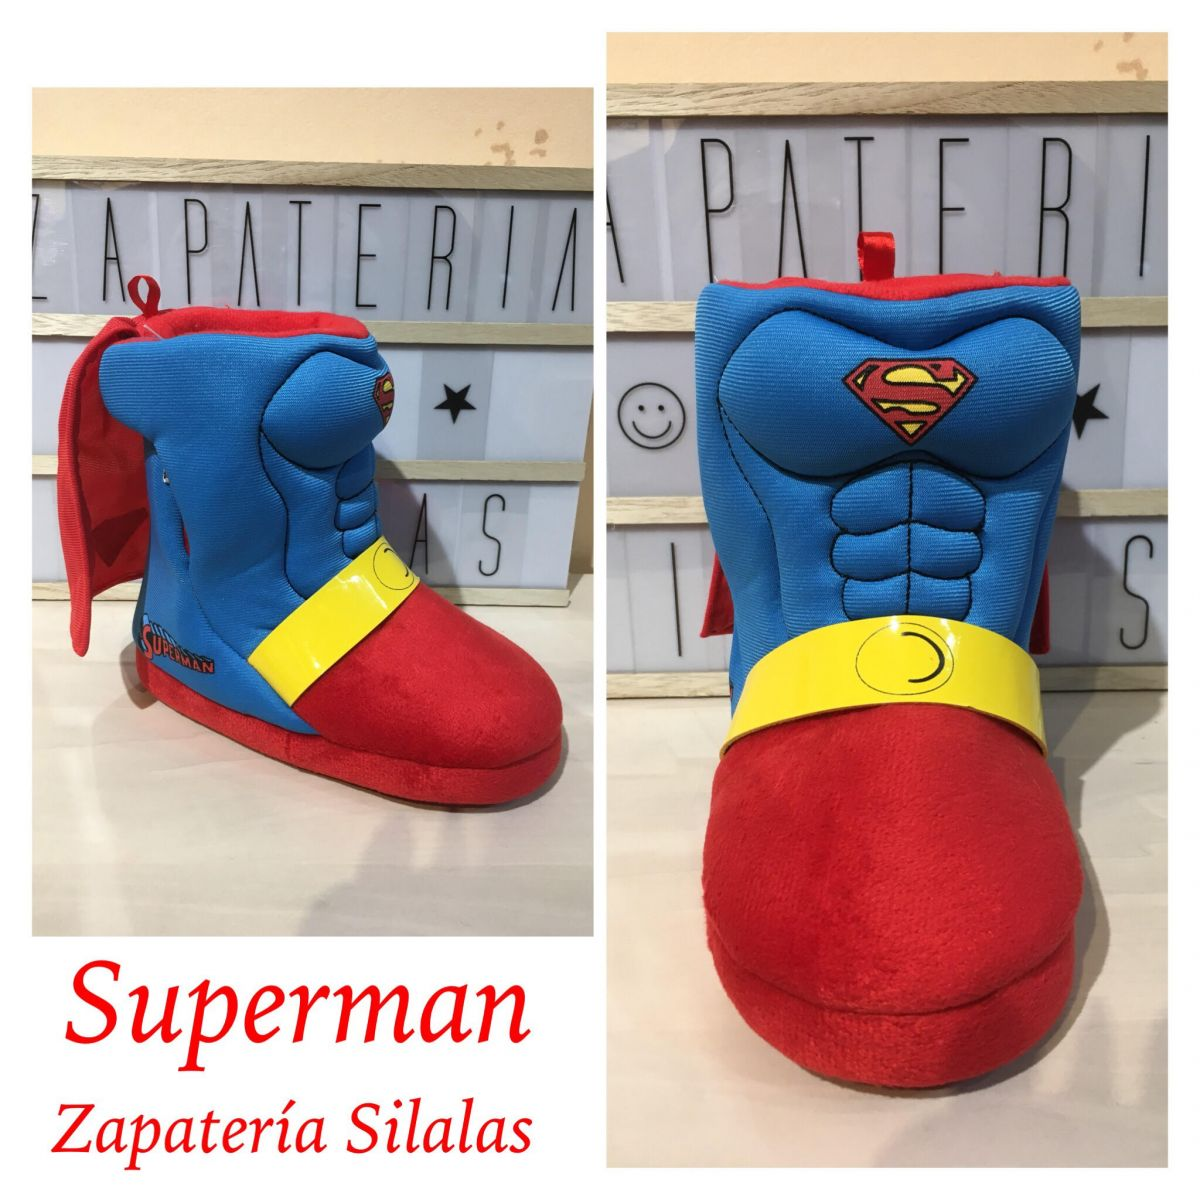 zapatilla superman